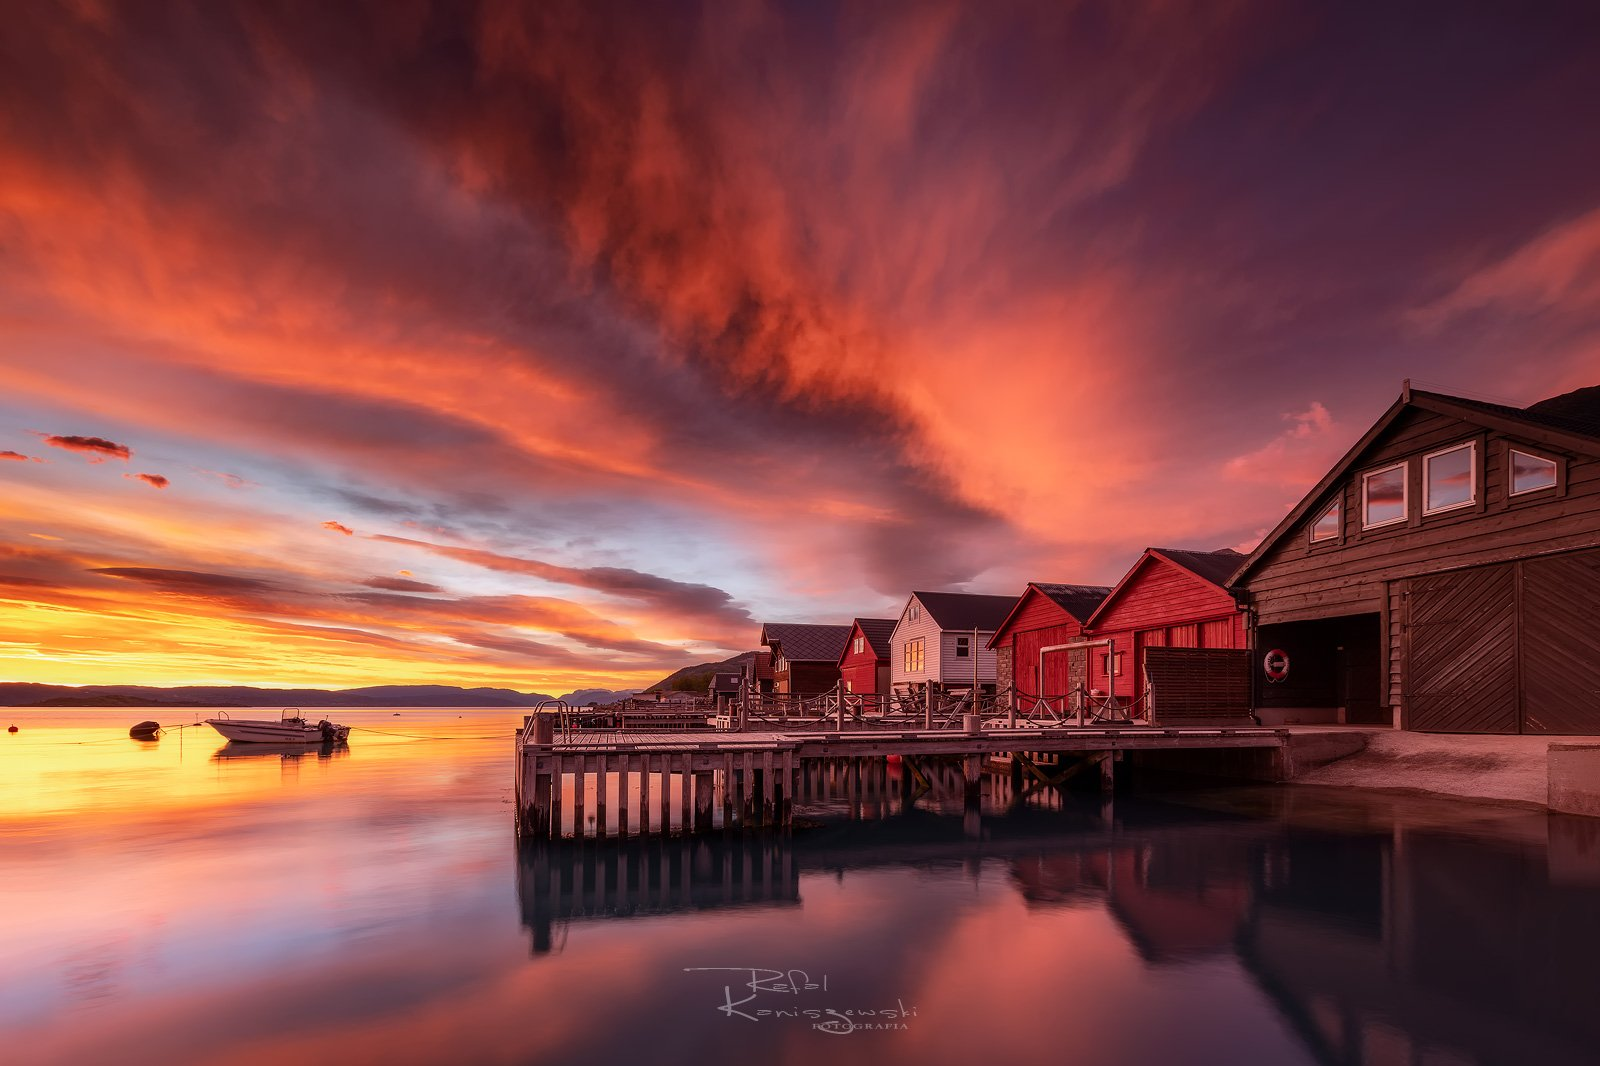 susnset,architecture,mood,red sky, travel,norway,house,reflections,water,fiord,, Kaniszewski Rafal